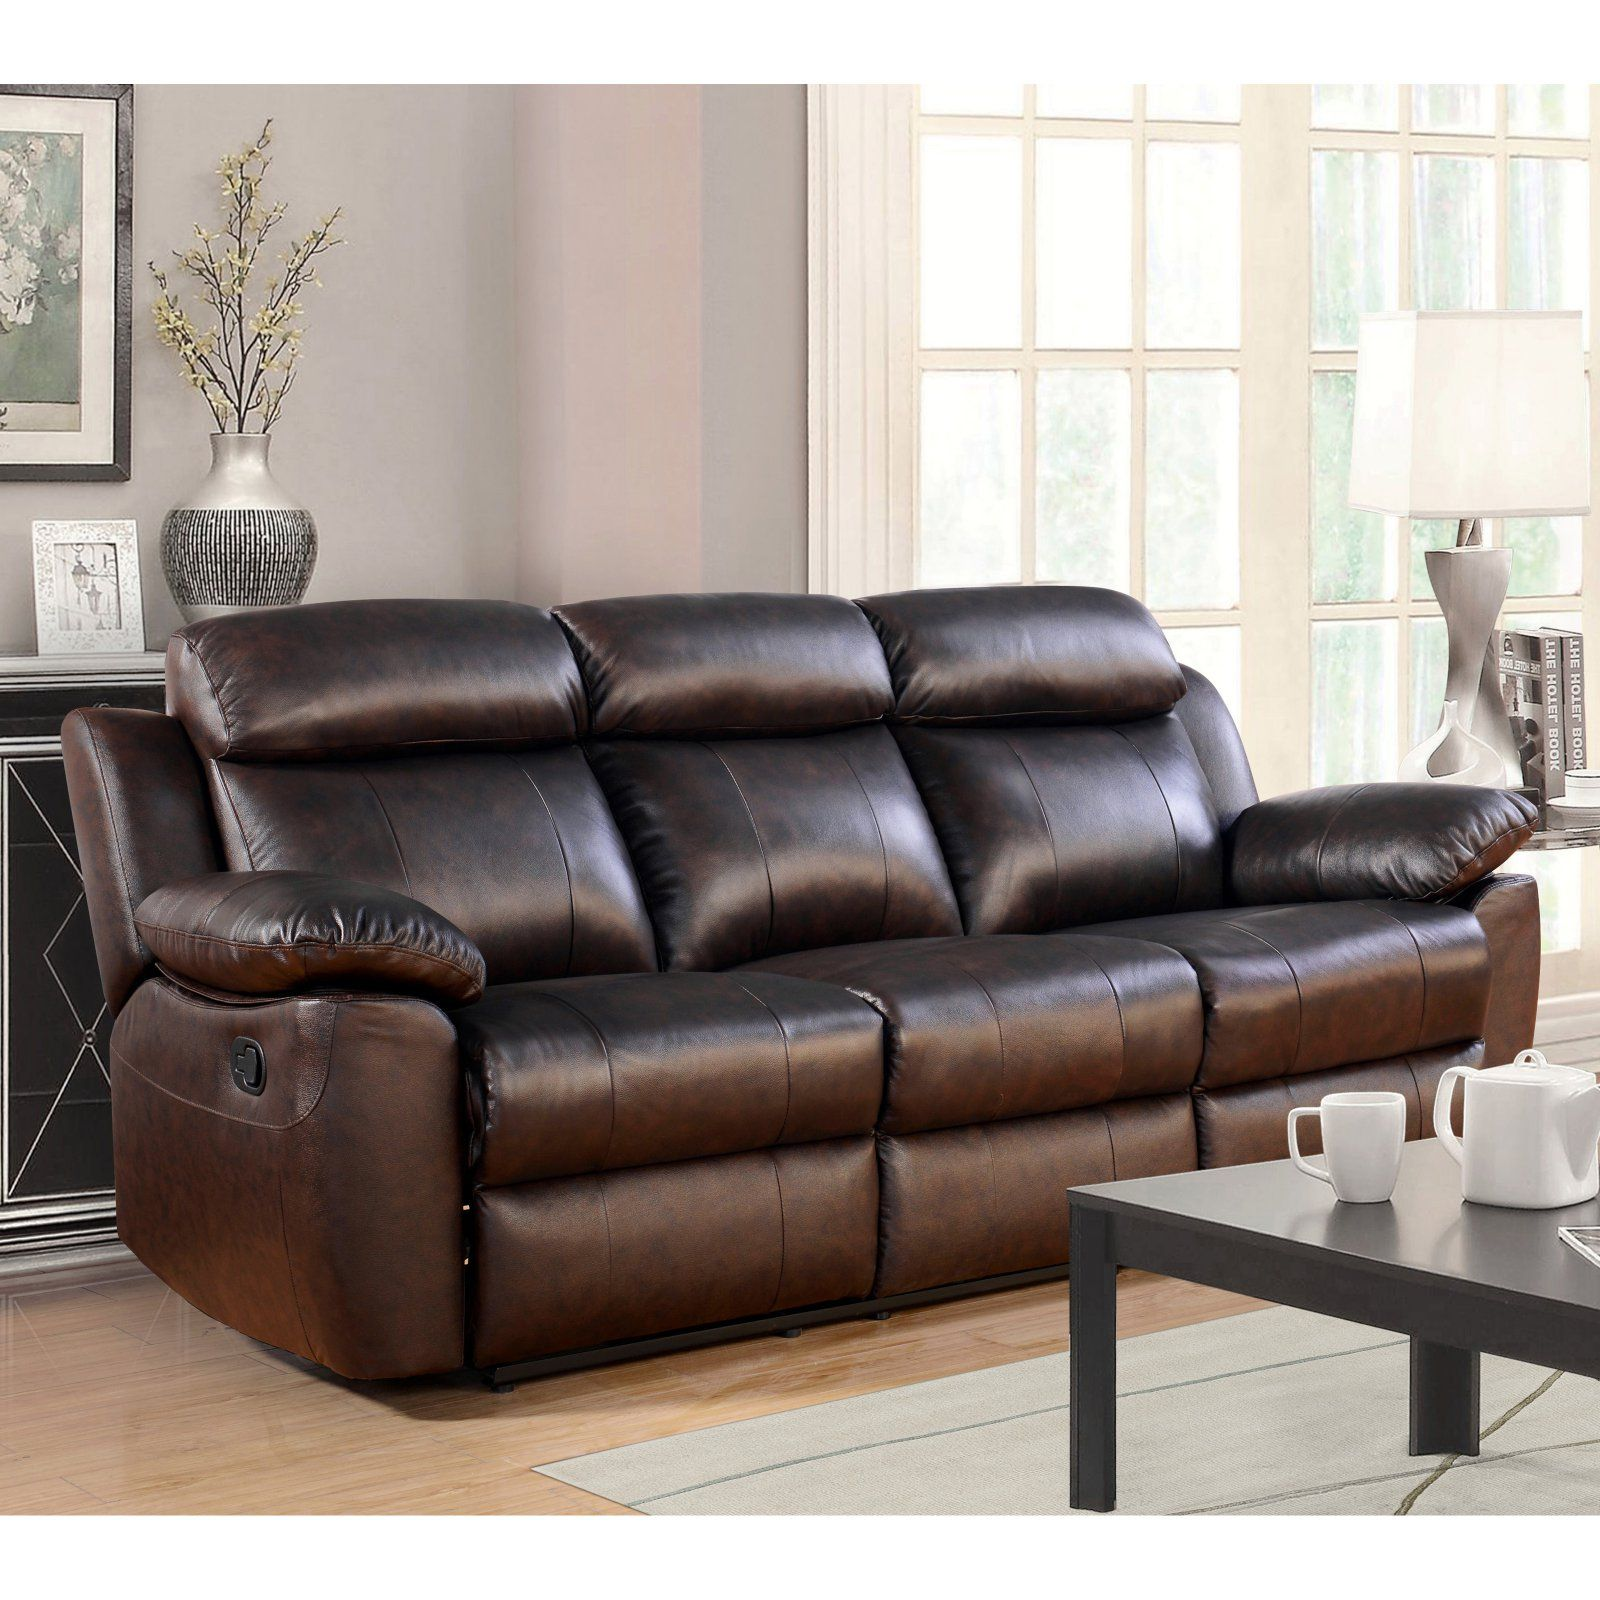 abbyson dominica top grain leather reclining sofa in 2019 products rh pinterest com